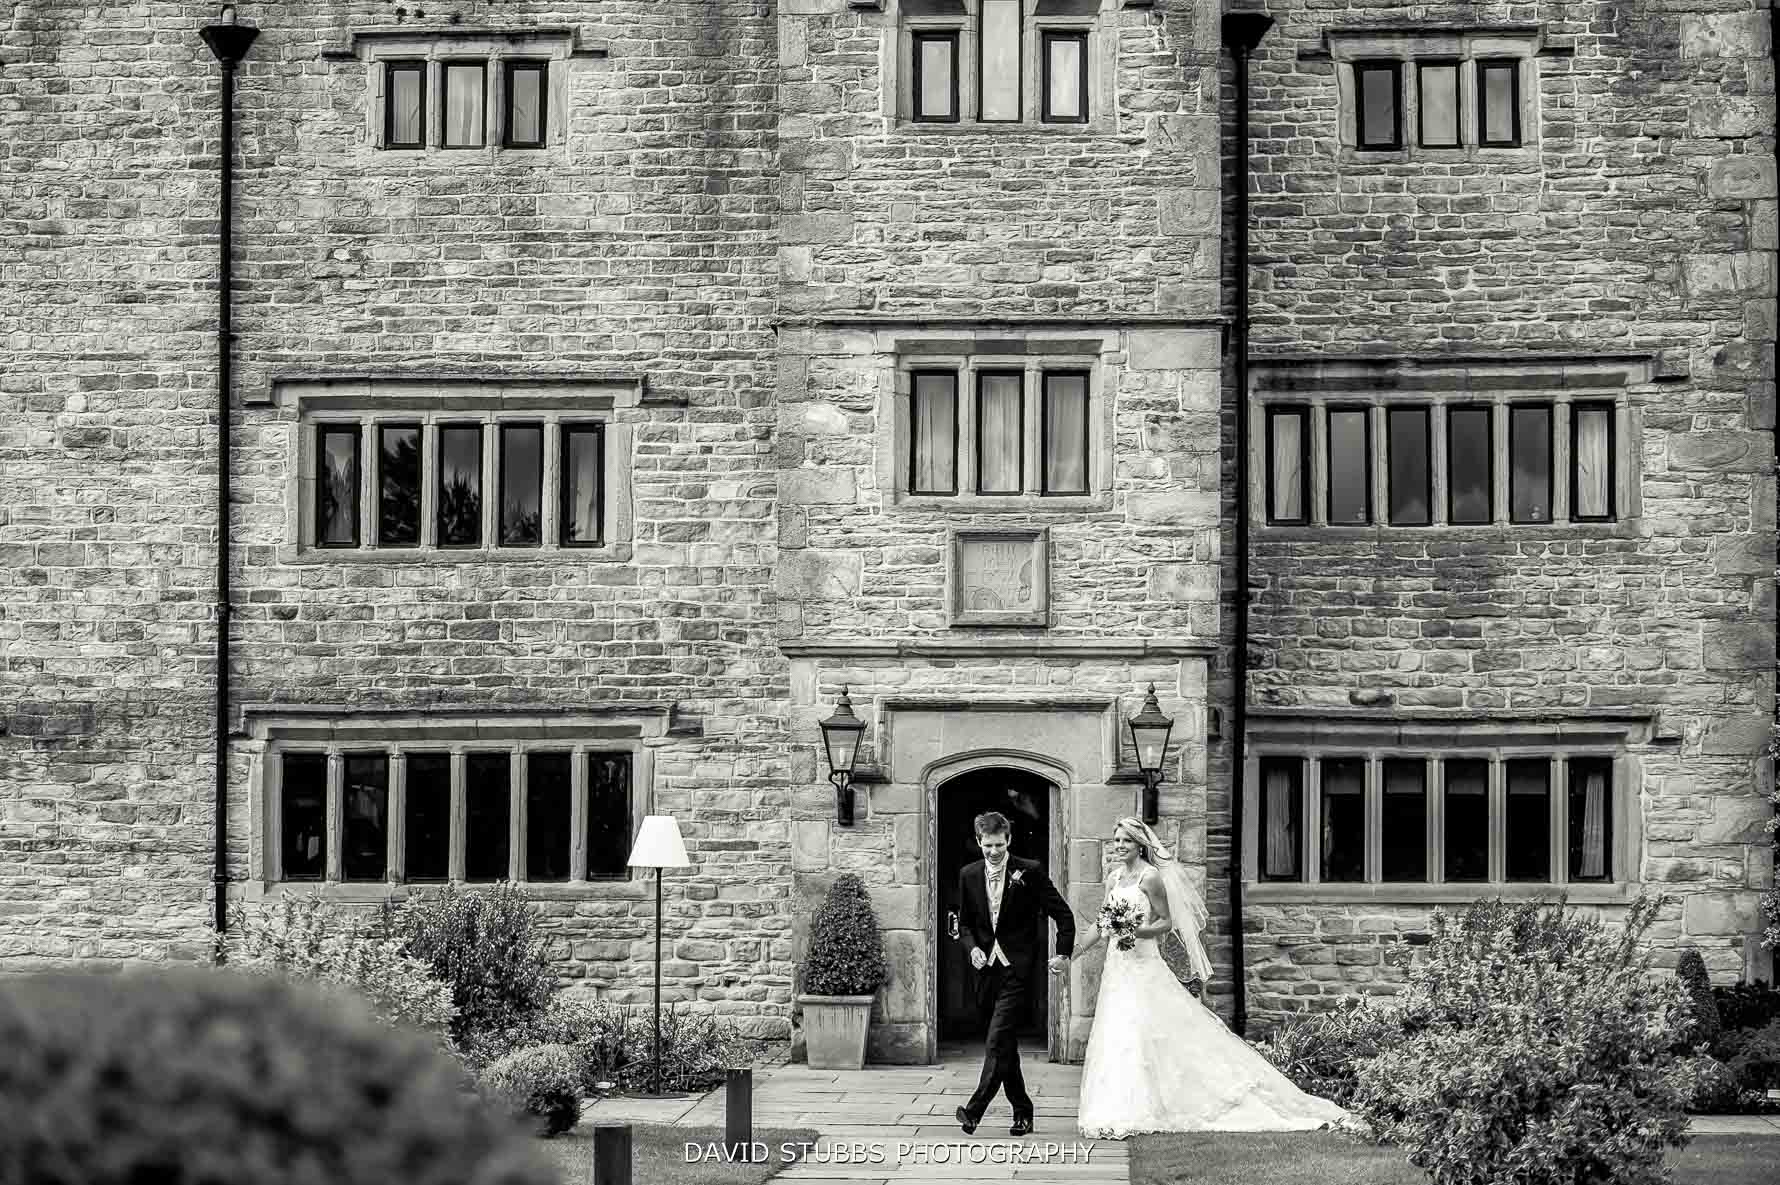 couple walking together in front of manor house